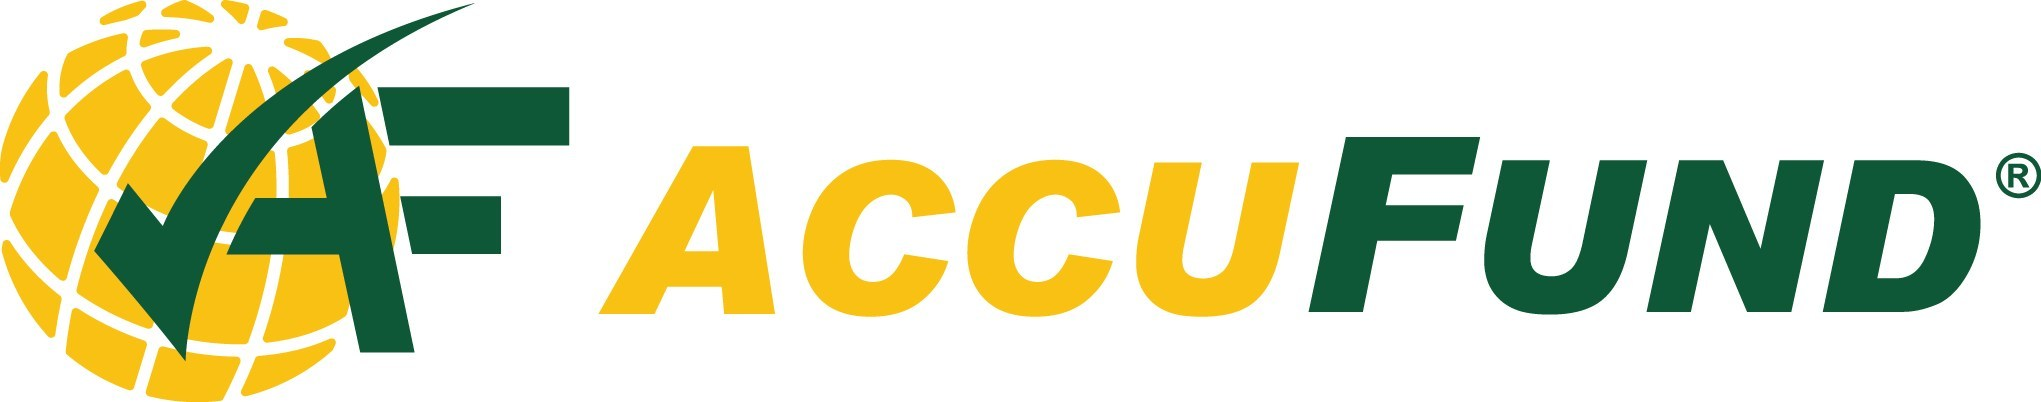 AccuFund Partners with Gray CPA Consulting to Deliver the AccuFund Financial/ERP Management System in Texas and Louisiana